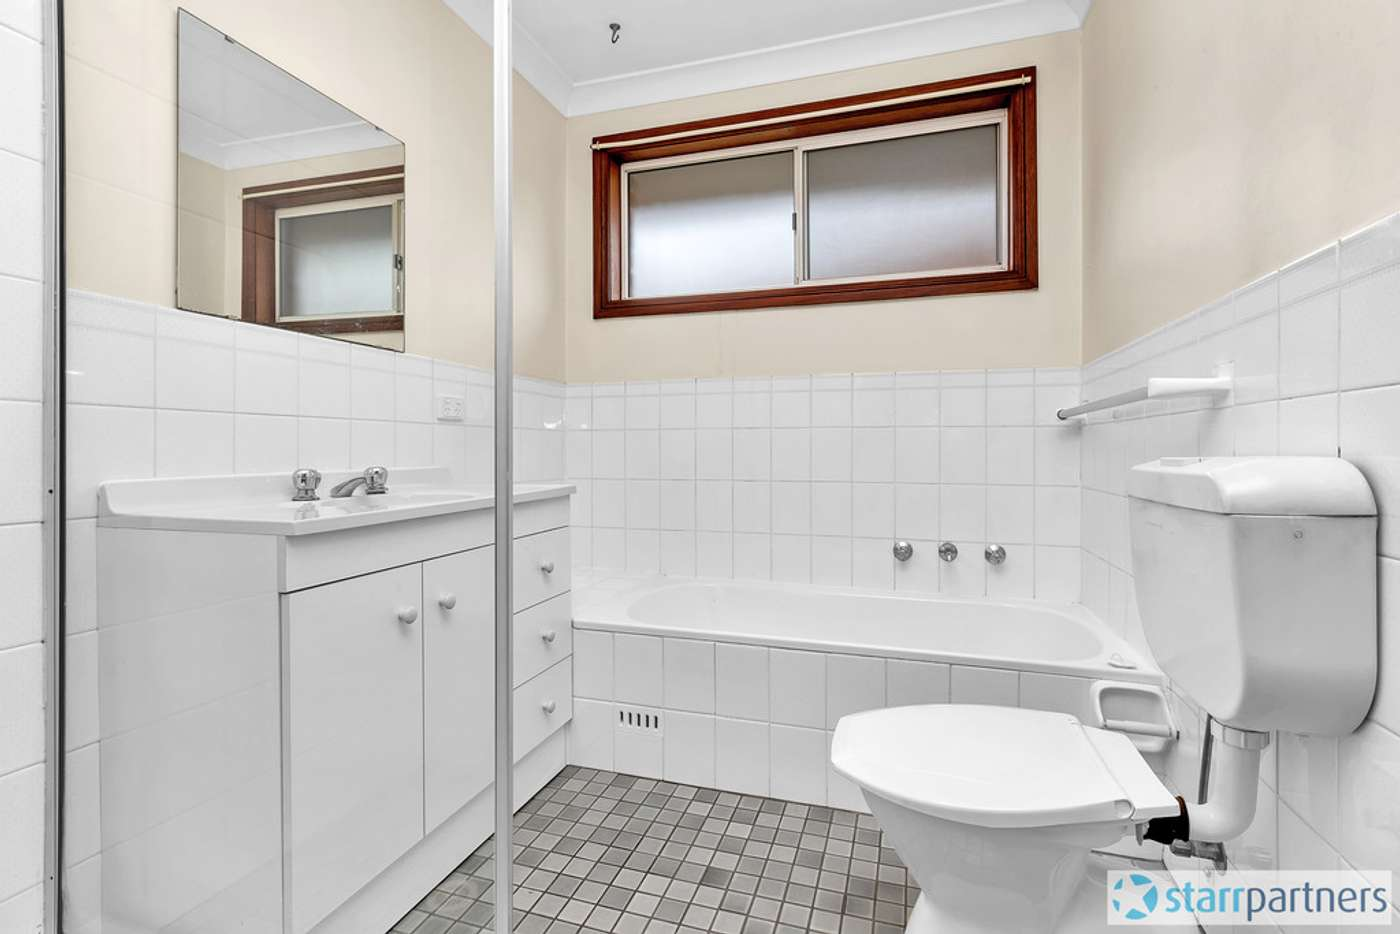 Seventh view of Homely house listing, 1/10 Wolseley Rd, Mcgraths Hill NSW 2756